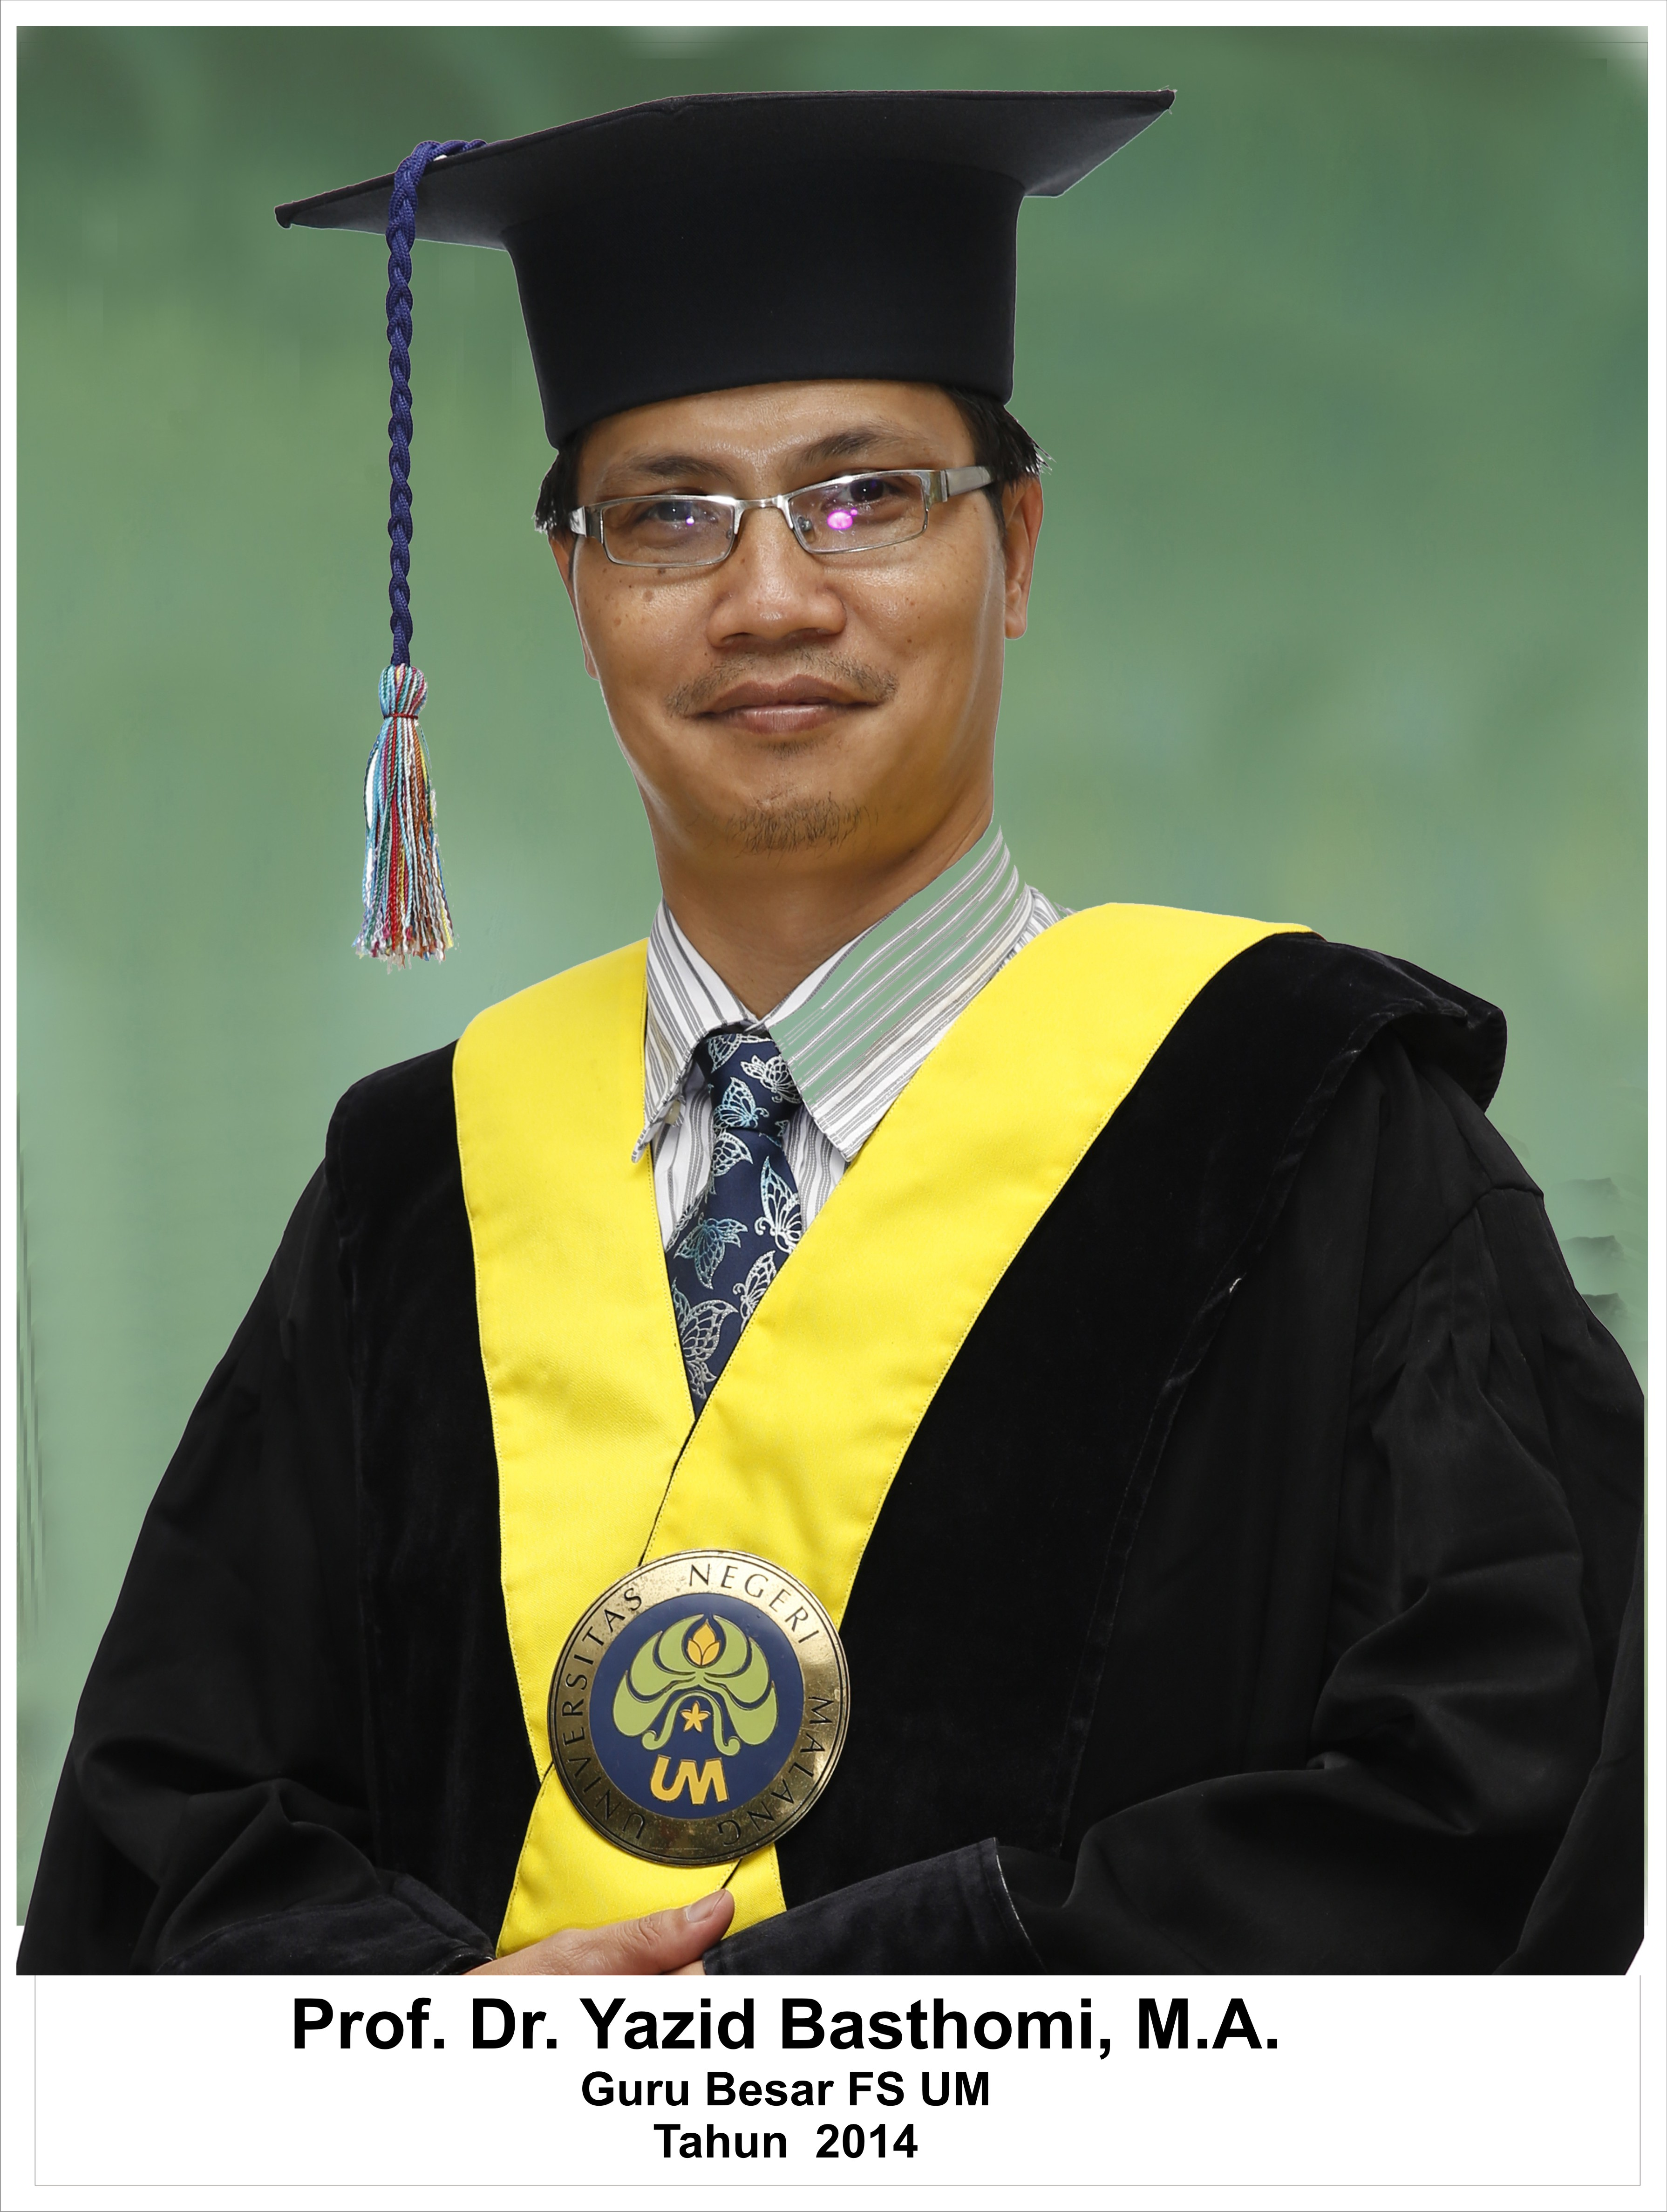 Prof. Dr. Yazid Busthomi, S.Pd., M.A